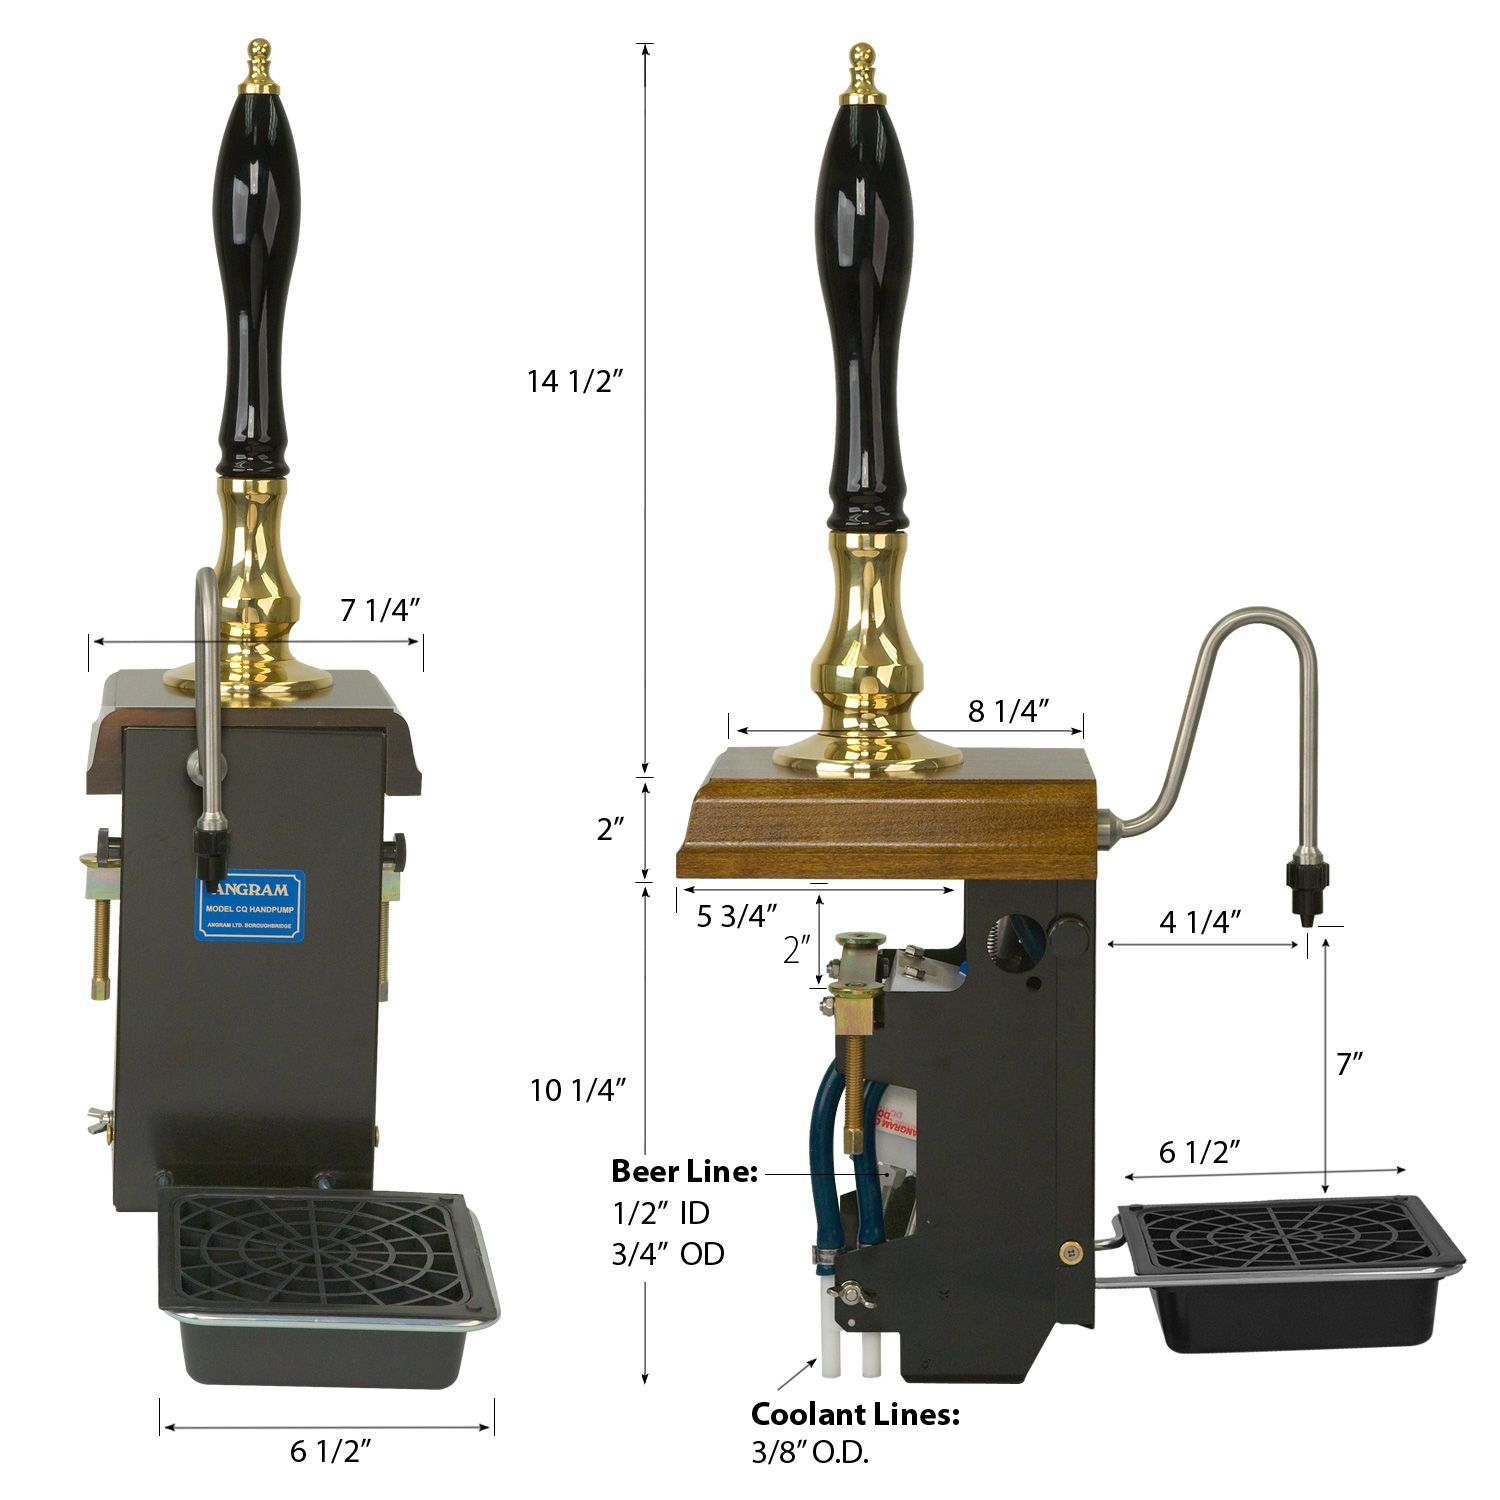 Cask Conditioned Dispensing Angram Clamp Beer Engine with water